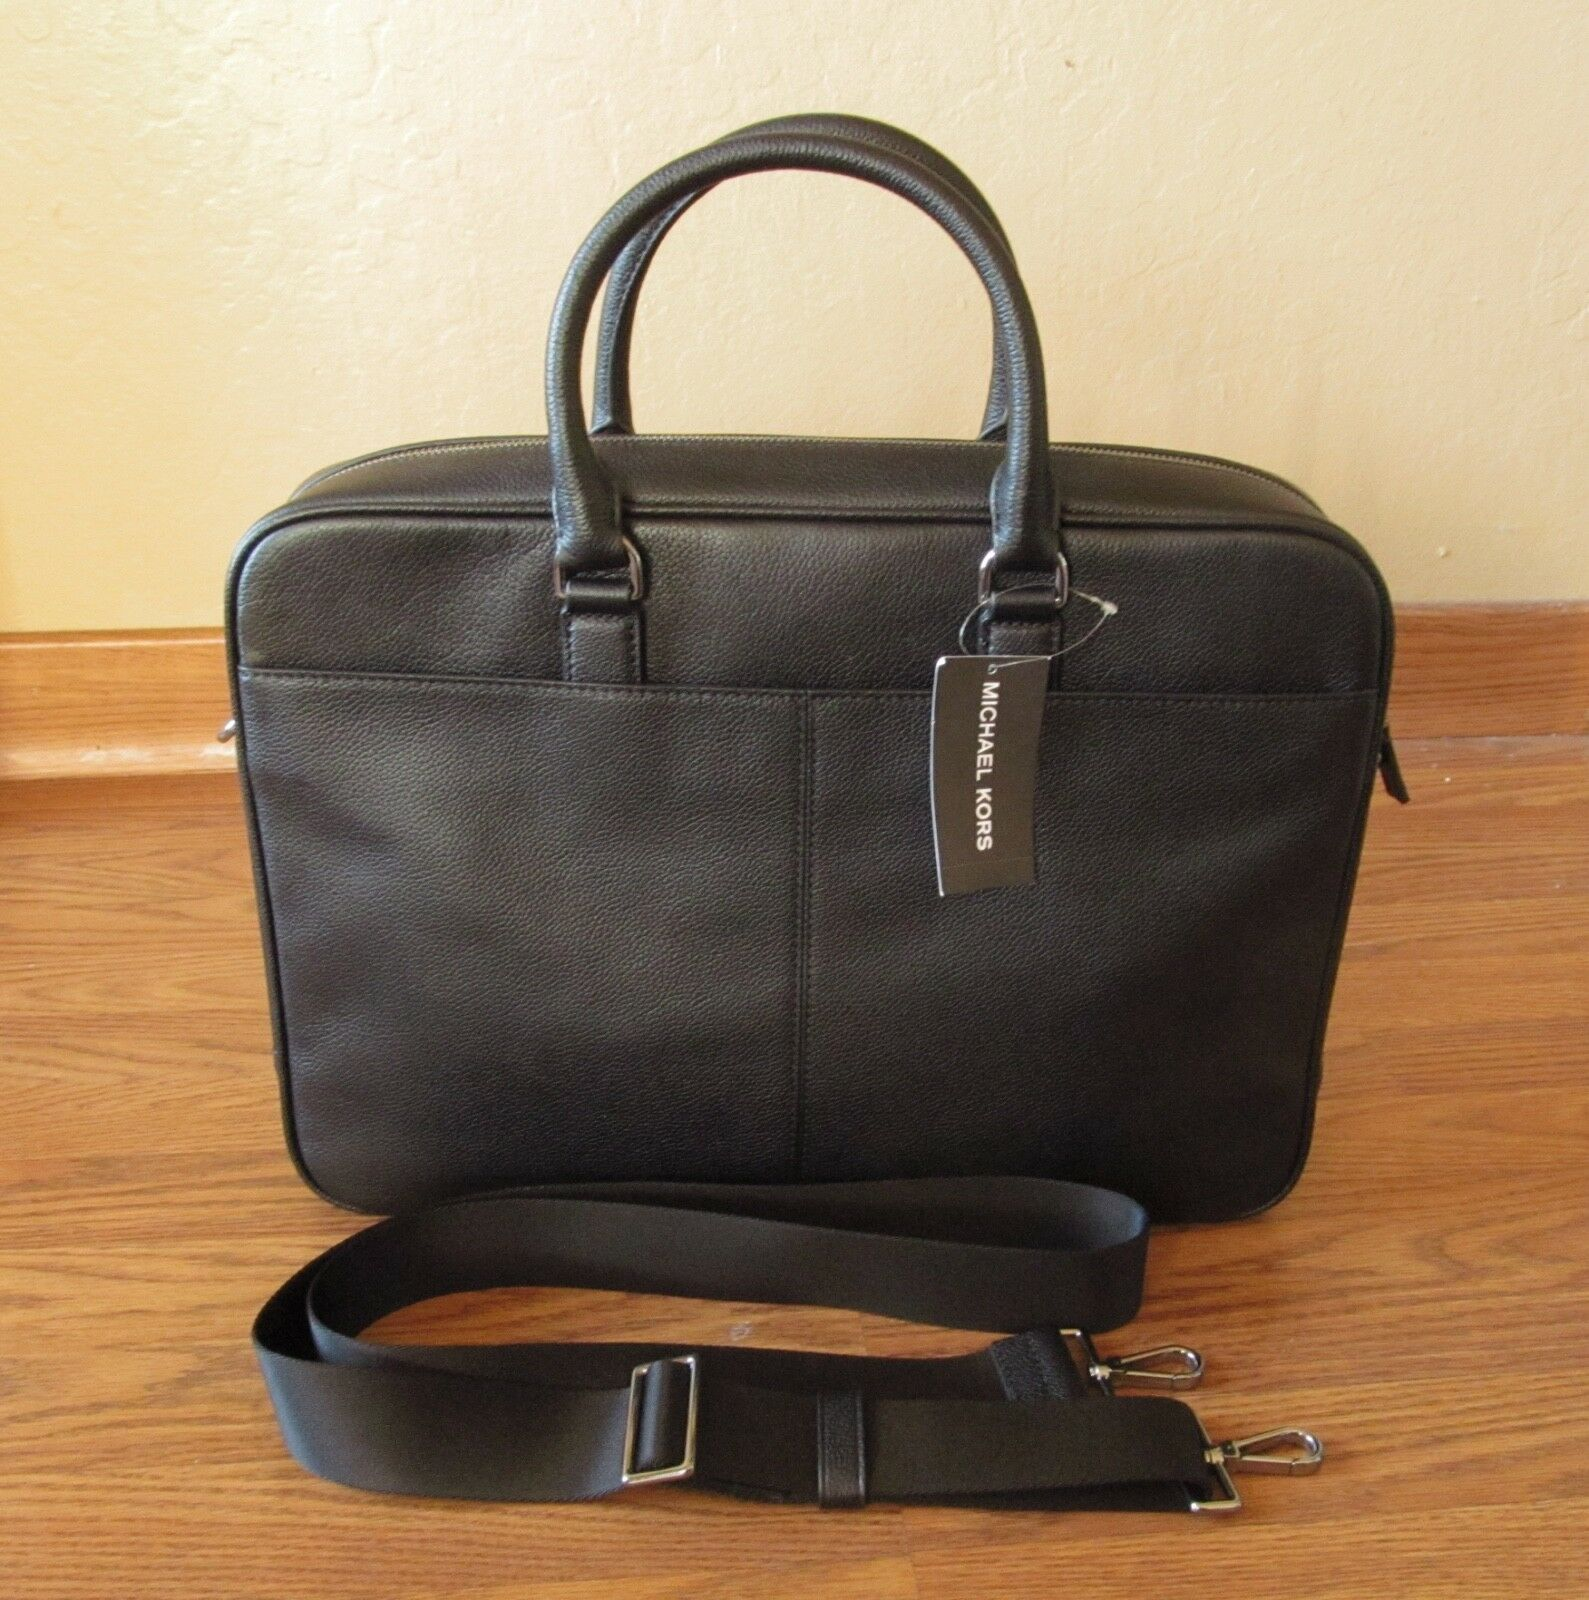 NWT Michael Kors Men's WARREN Leather Medium NS Messenger Bag Black,Navy,Luggage